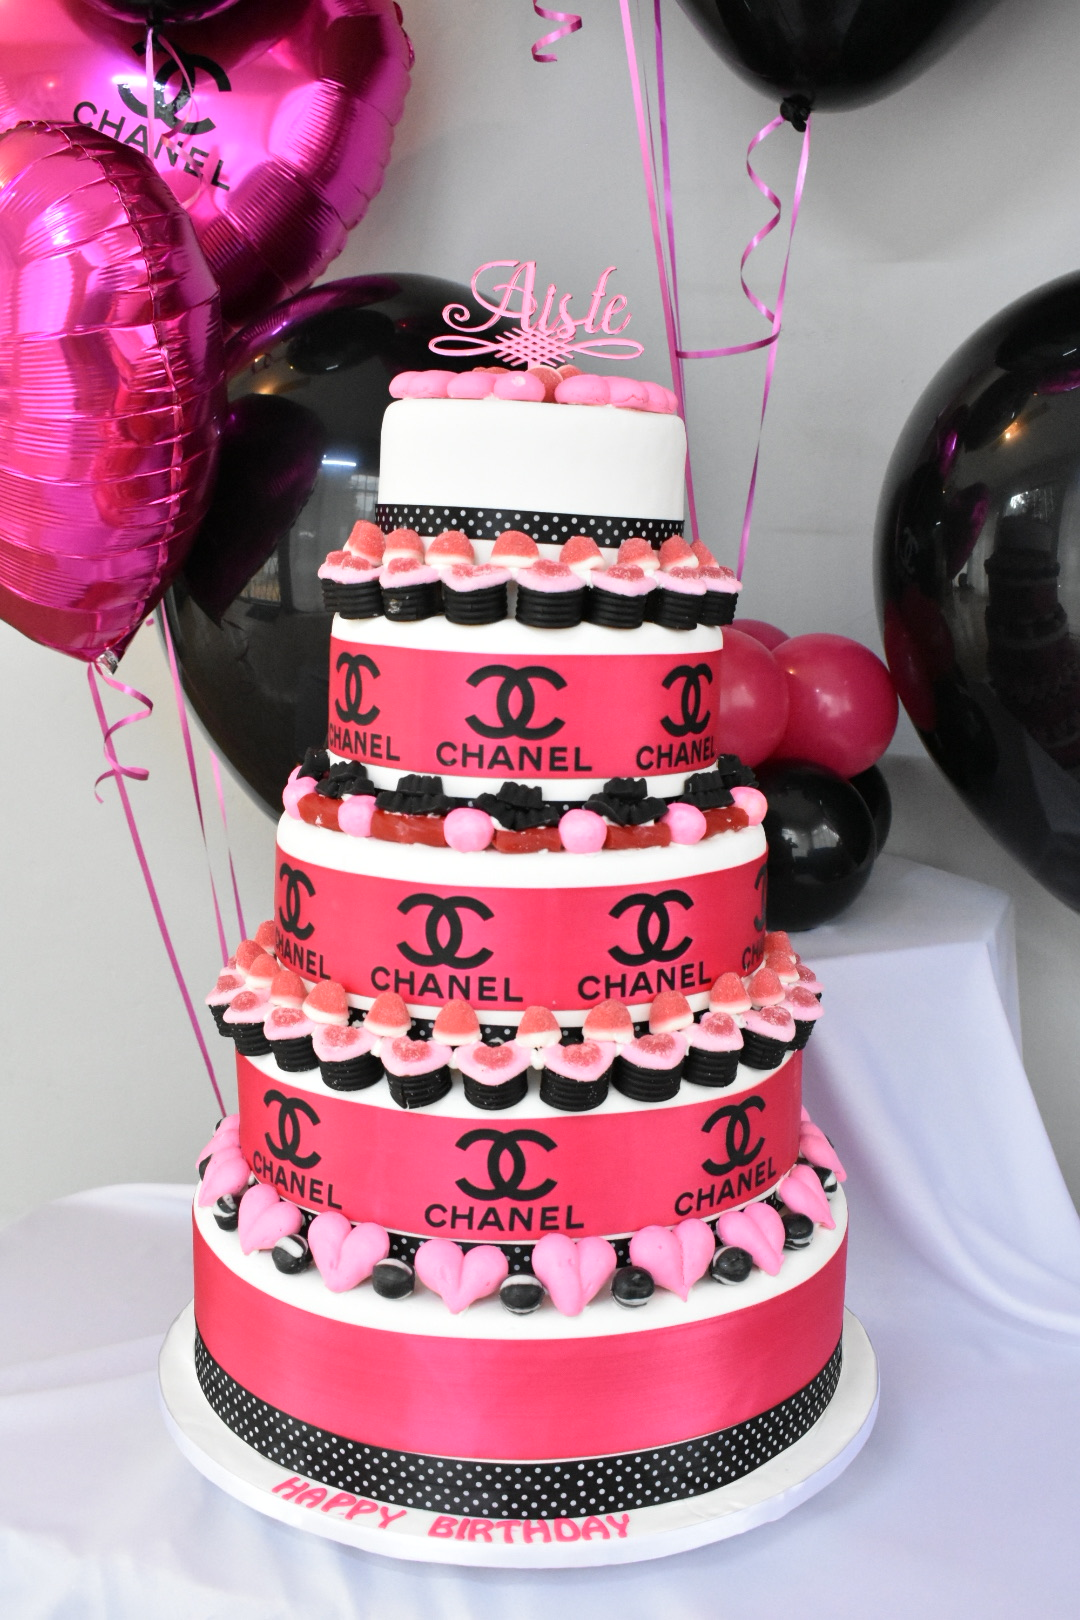 Custom Luxury Chanel Cake